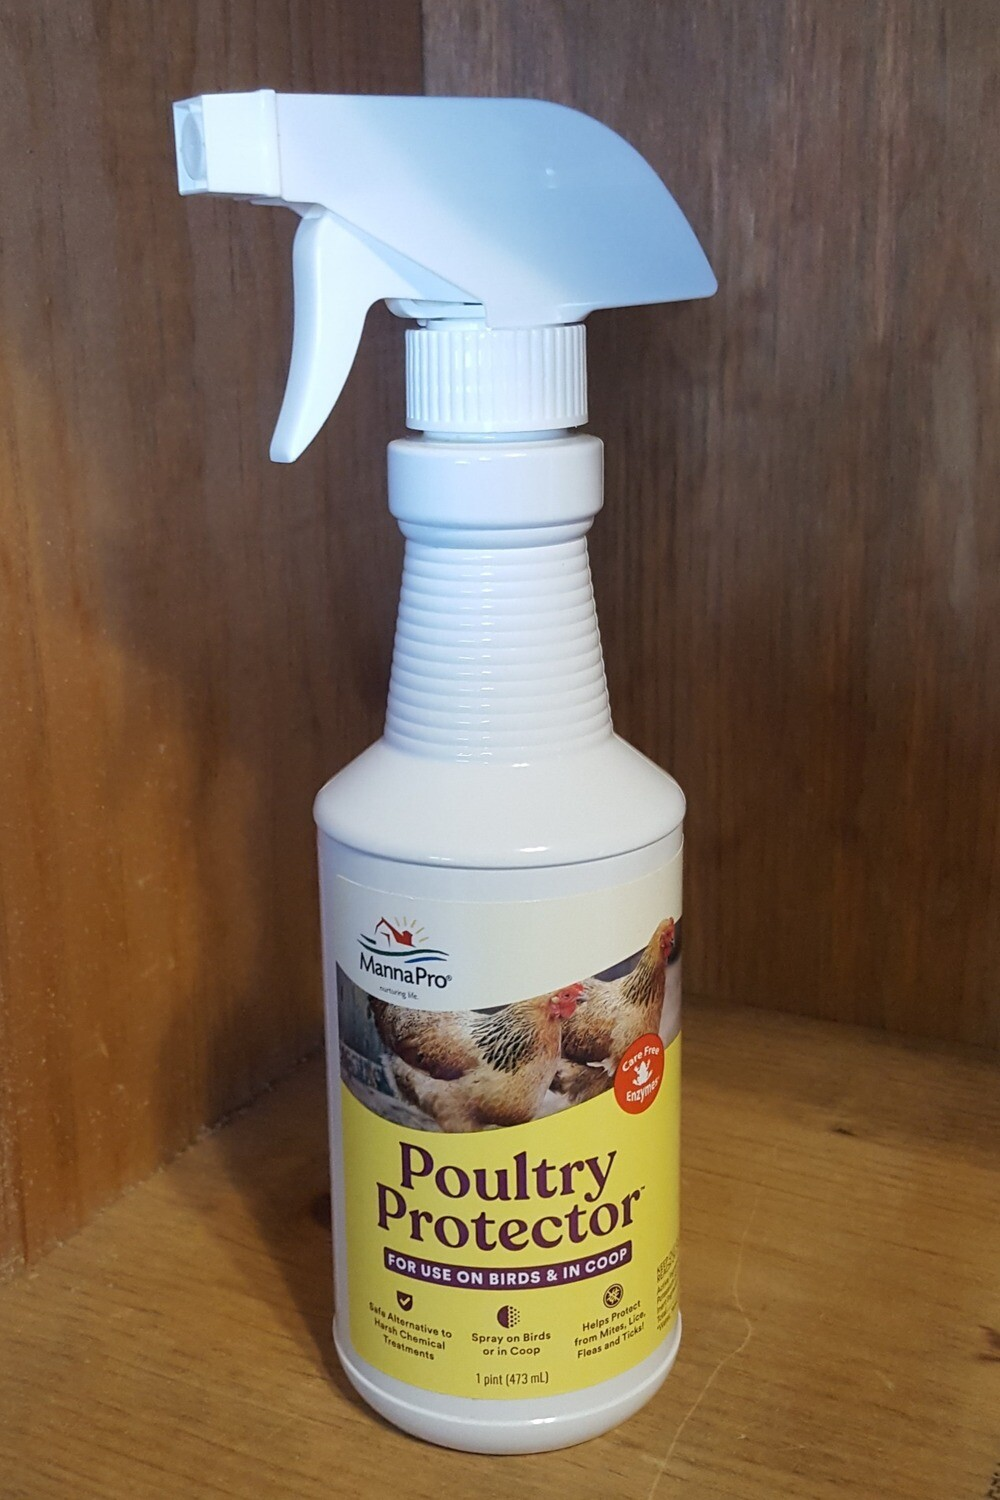 Manna Pro Poultry Protector Insect Spray, 16 oz.